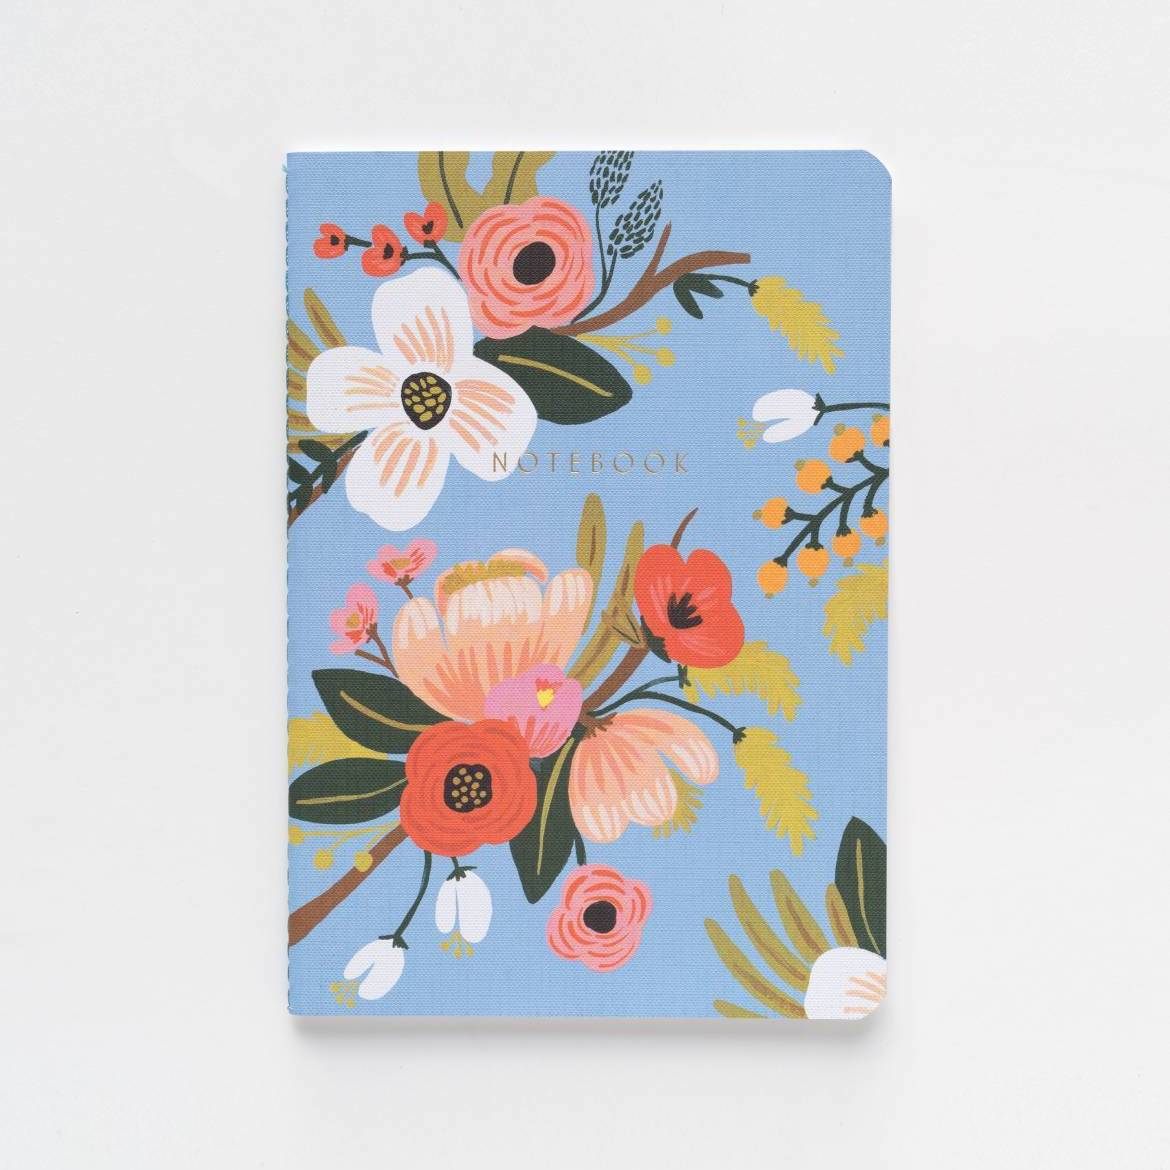 Lively Floral Notebook Set - Periwinkle - Rifle Paper Co.